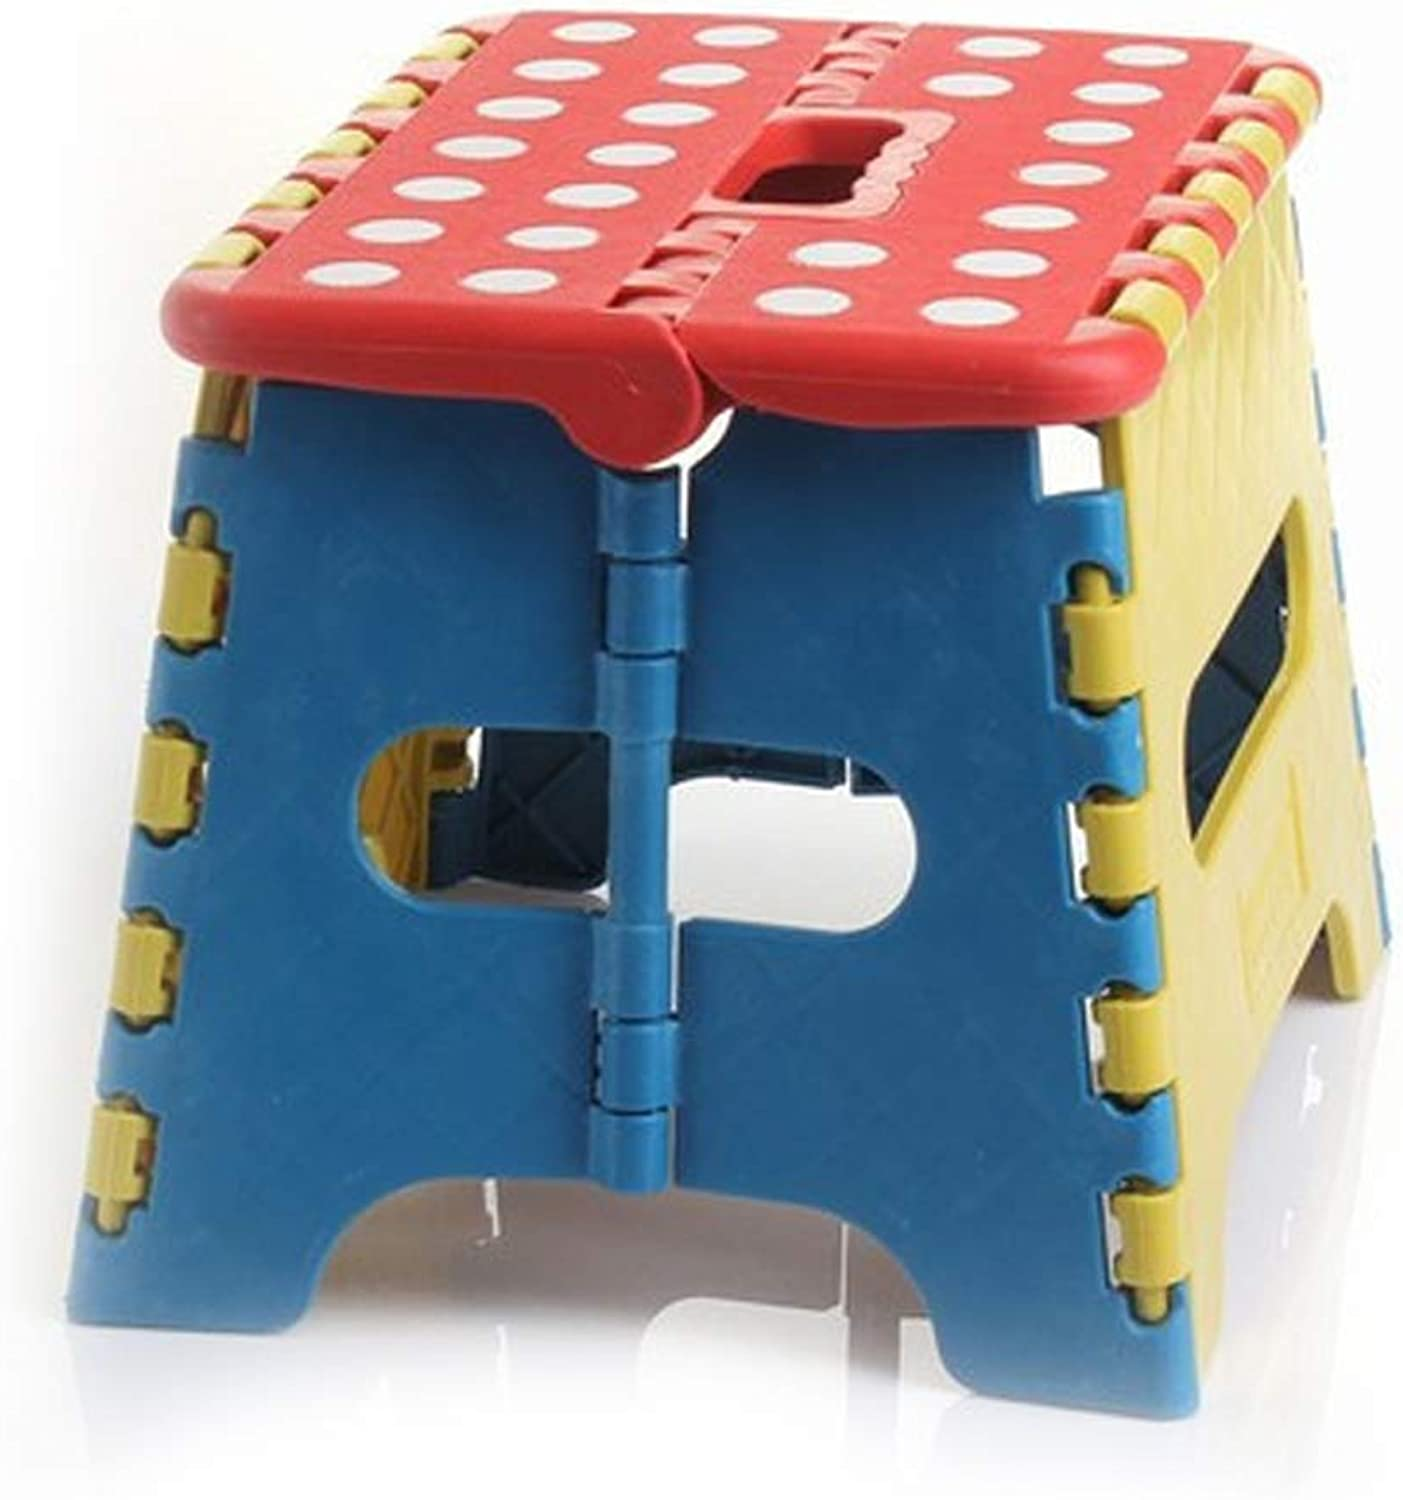 Folding Plastic Kids' Step Stools Indoor Portable Foldable for Kids and Adults Outdoor Picnic Bench